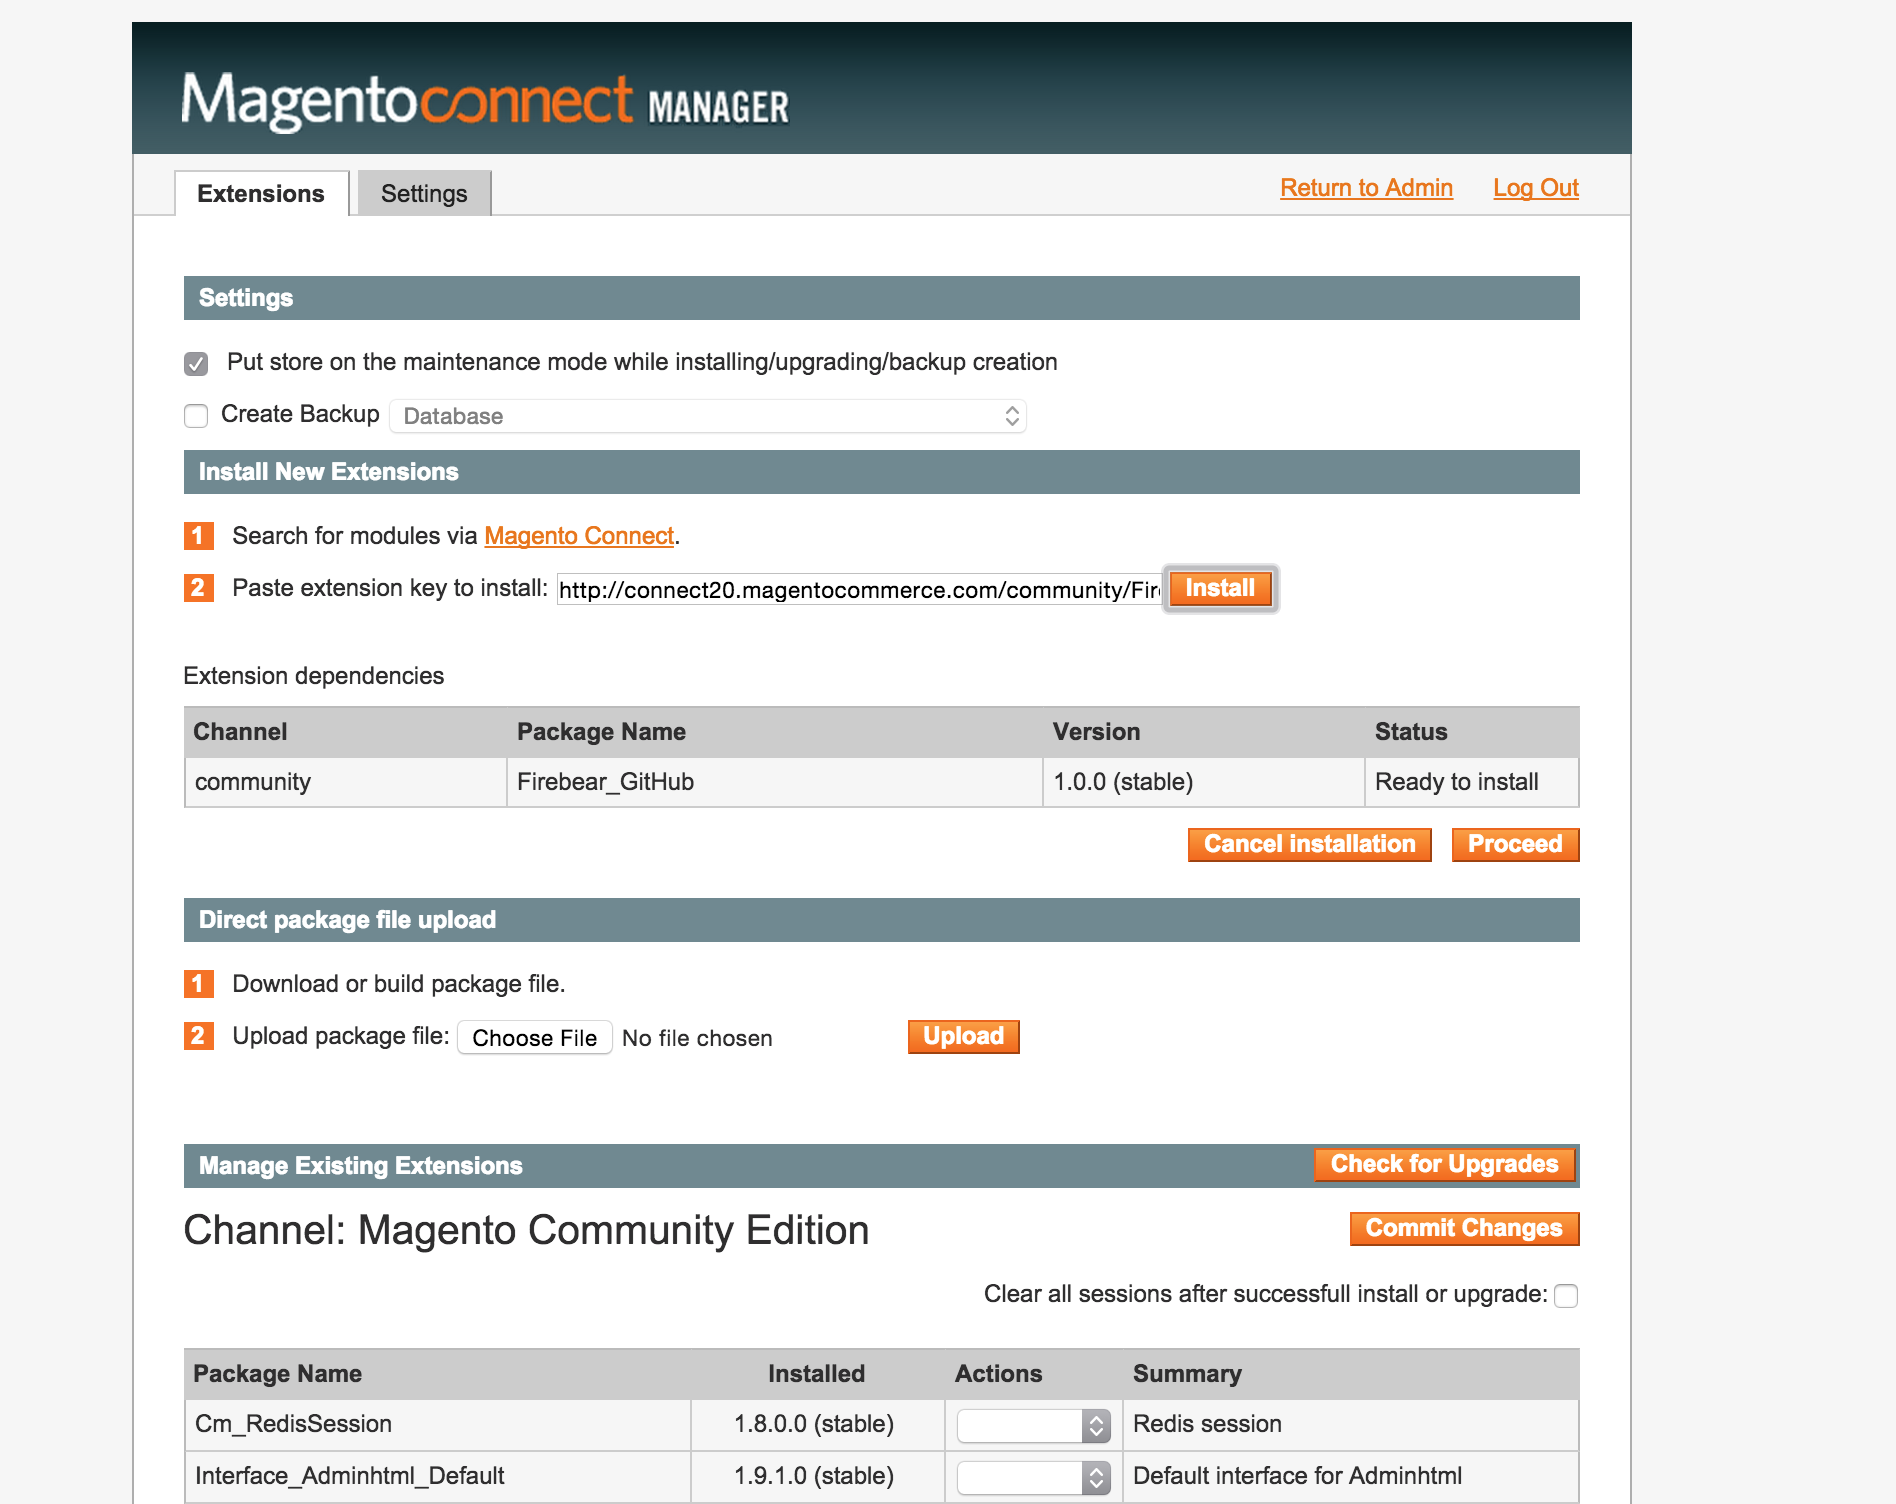 How to Install Magento Extensions (Magento Connect, FTP, SSH ...